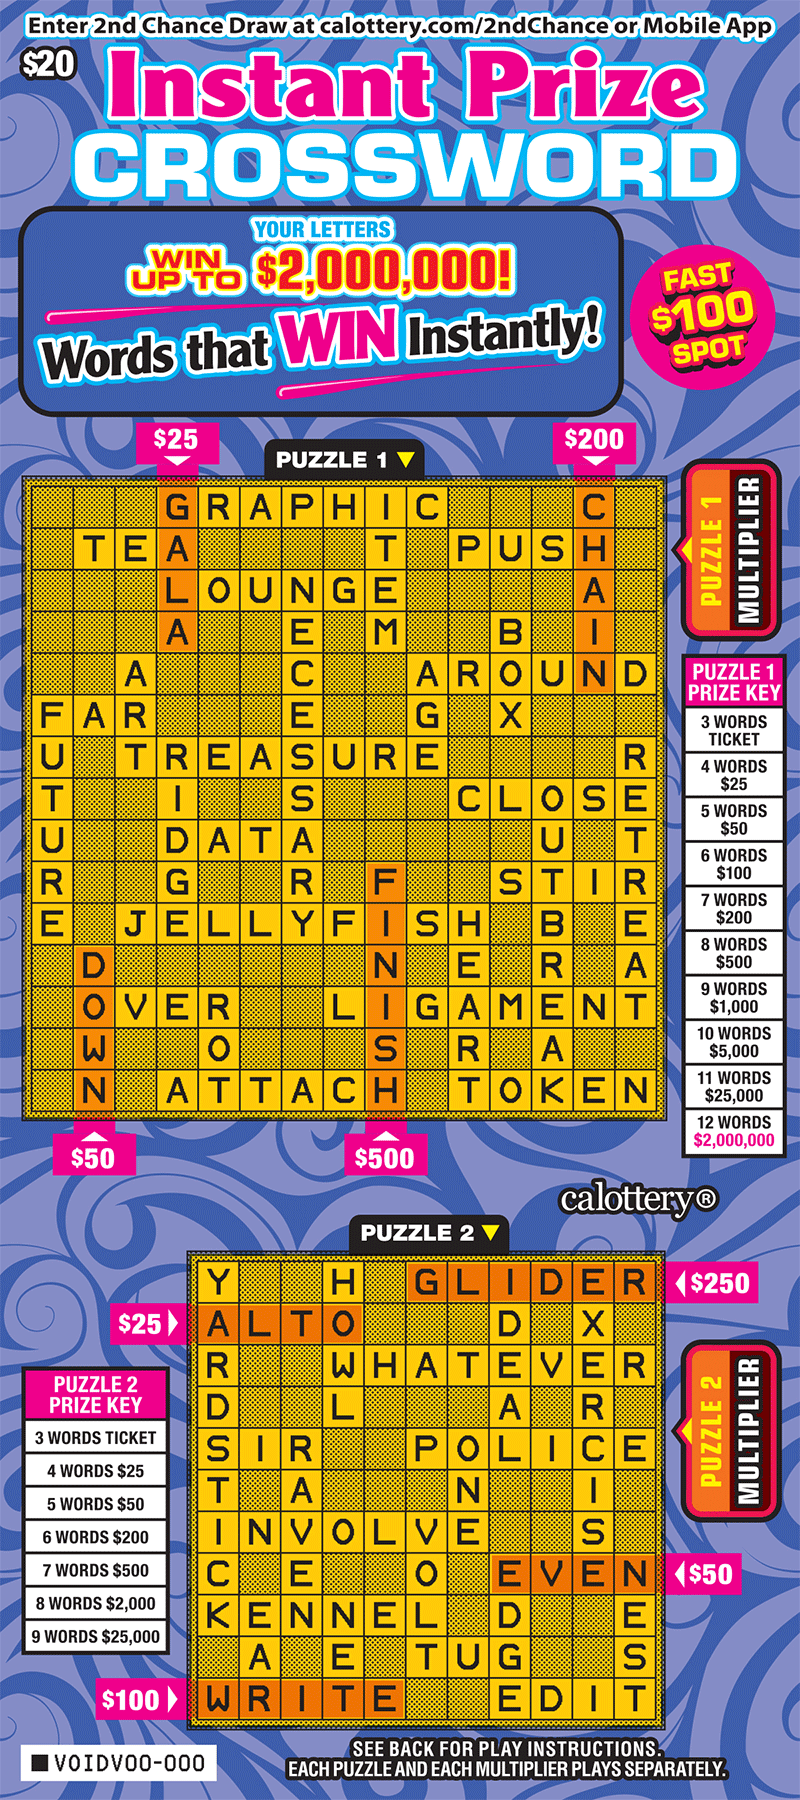 $20 Instant Prize Crossword unscratched ticket